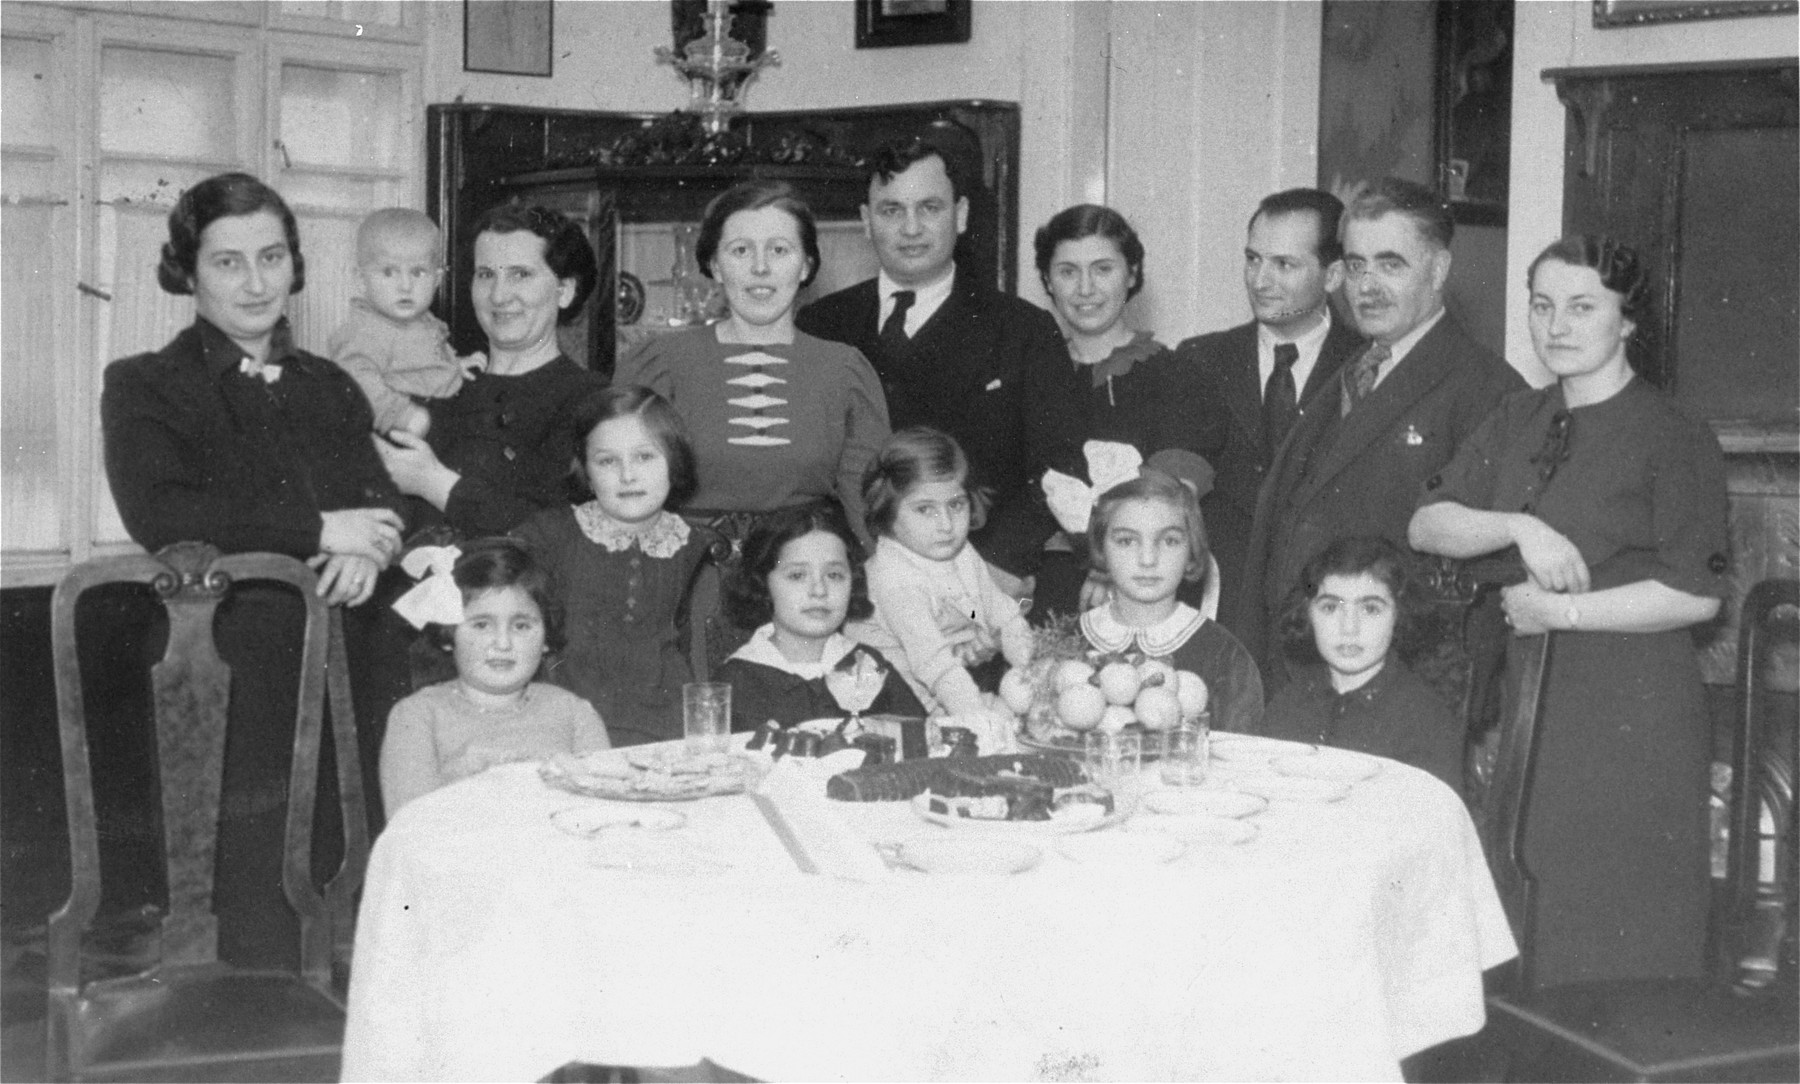 Portrait of the Guth family in their dining room in Lucenec, Czechoslovakia.  Among those pictured are Mano and Klari (Kohn) Guth (fourth and fifth from the right) and Sandor Schonberg, a family friend (second from the right).  The Guths owned an import/export specialties store in Lucenec.  Mano died before the war, while Klari and her two daughters were deported in1944 to Auschwitz, where they perished.